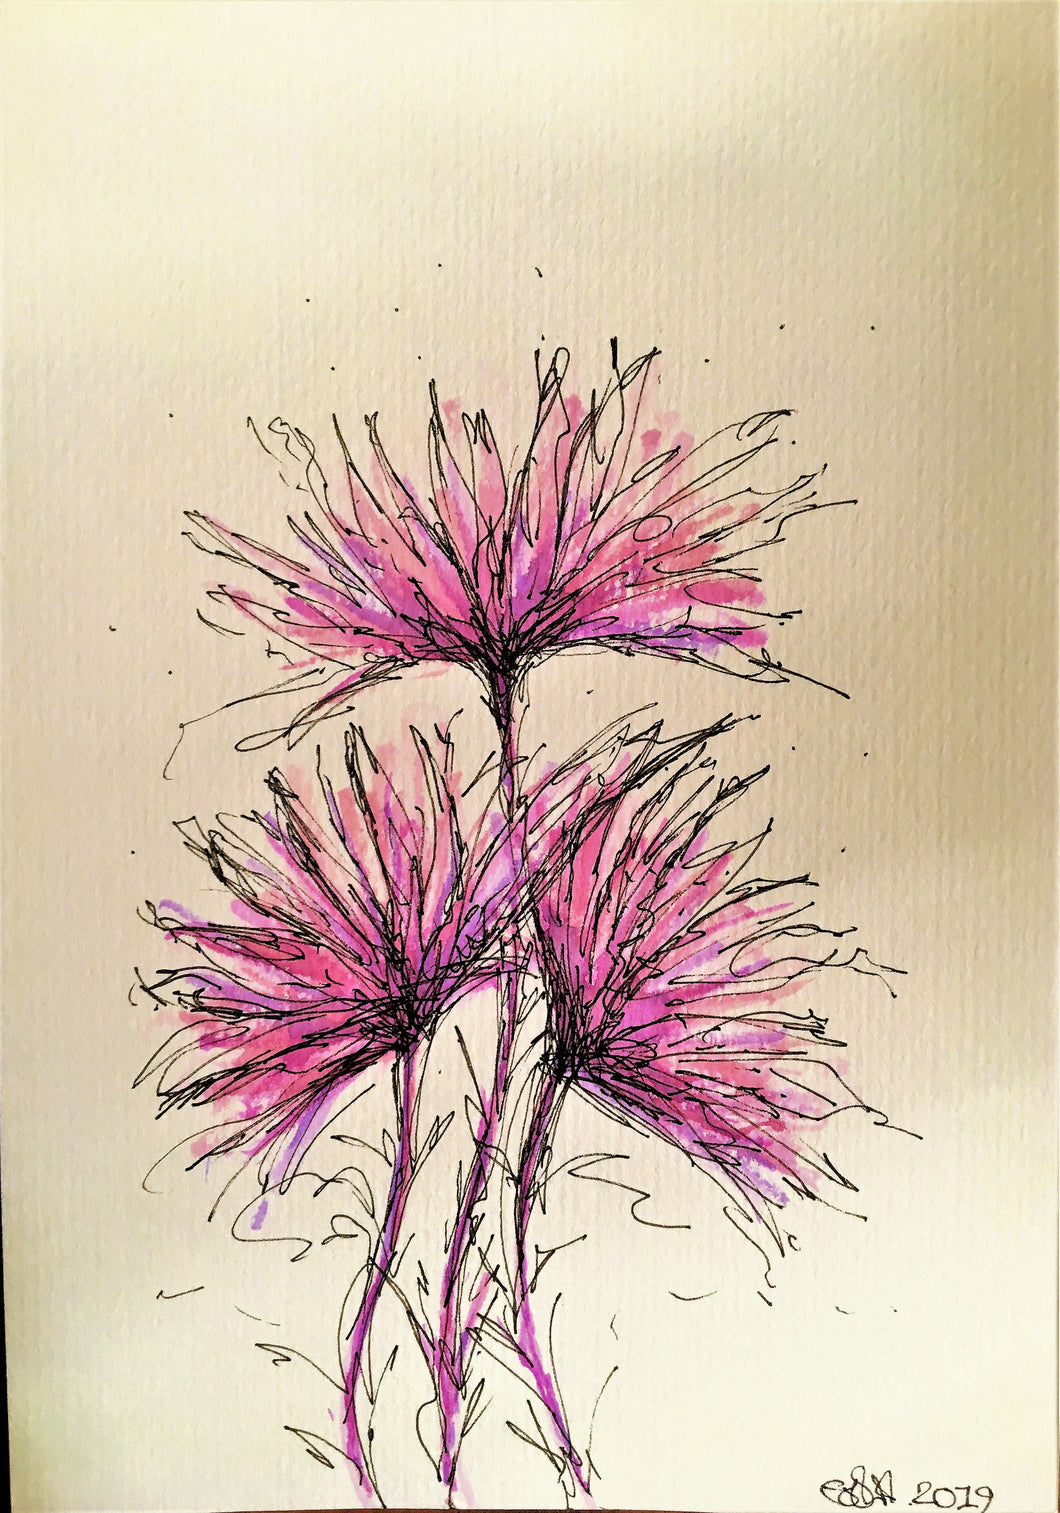 Abstract Purple/Liliac Flowers - Original Watercolour Painting - Unframed - eDgE dEsiGn London